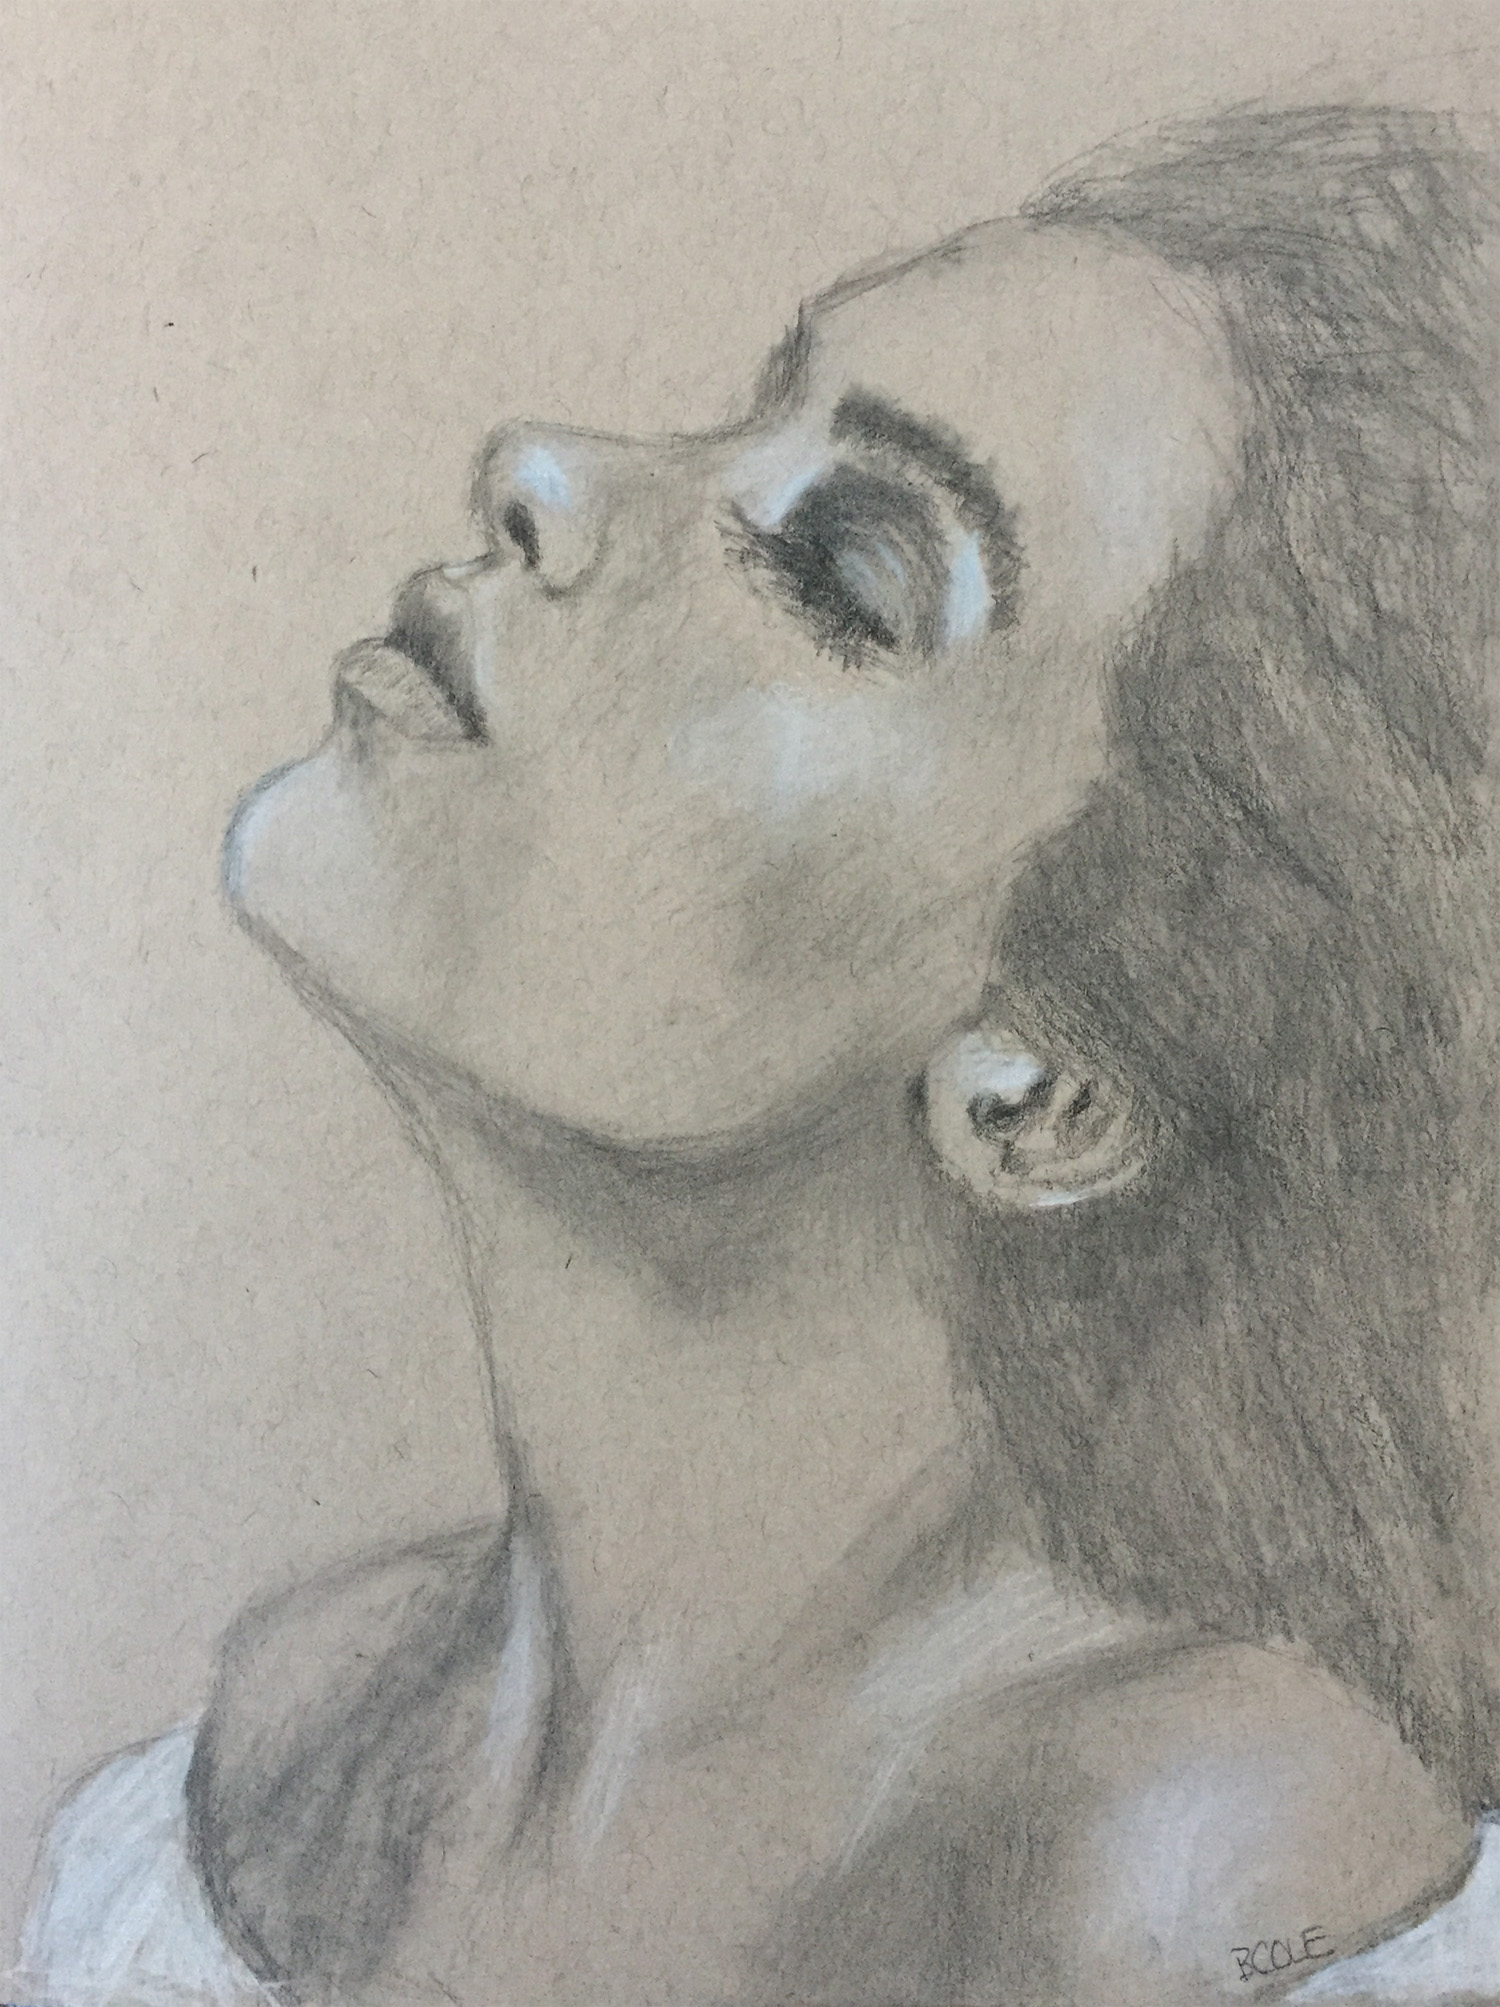 Study - Graphite and White Pastel on Toned Paper